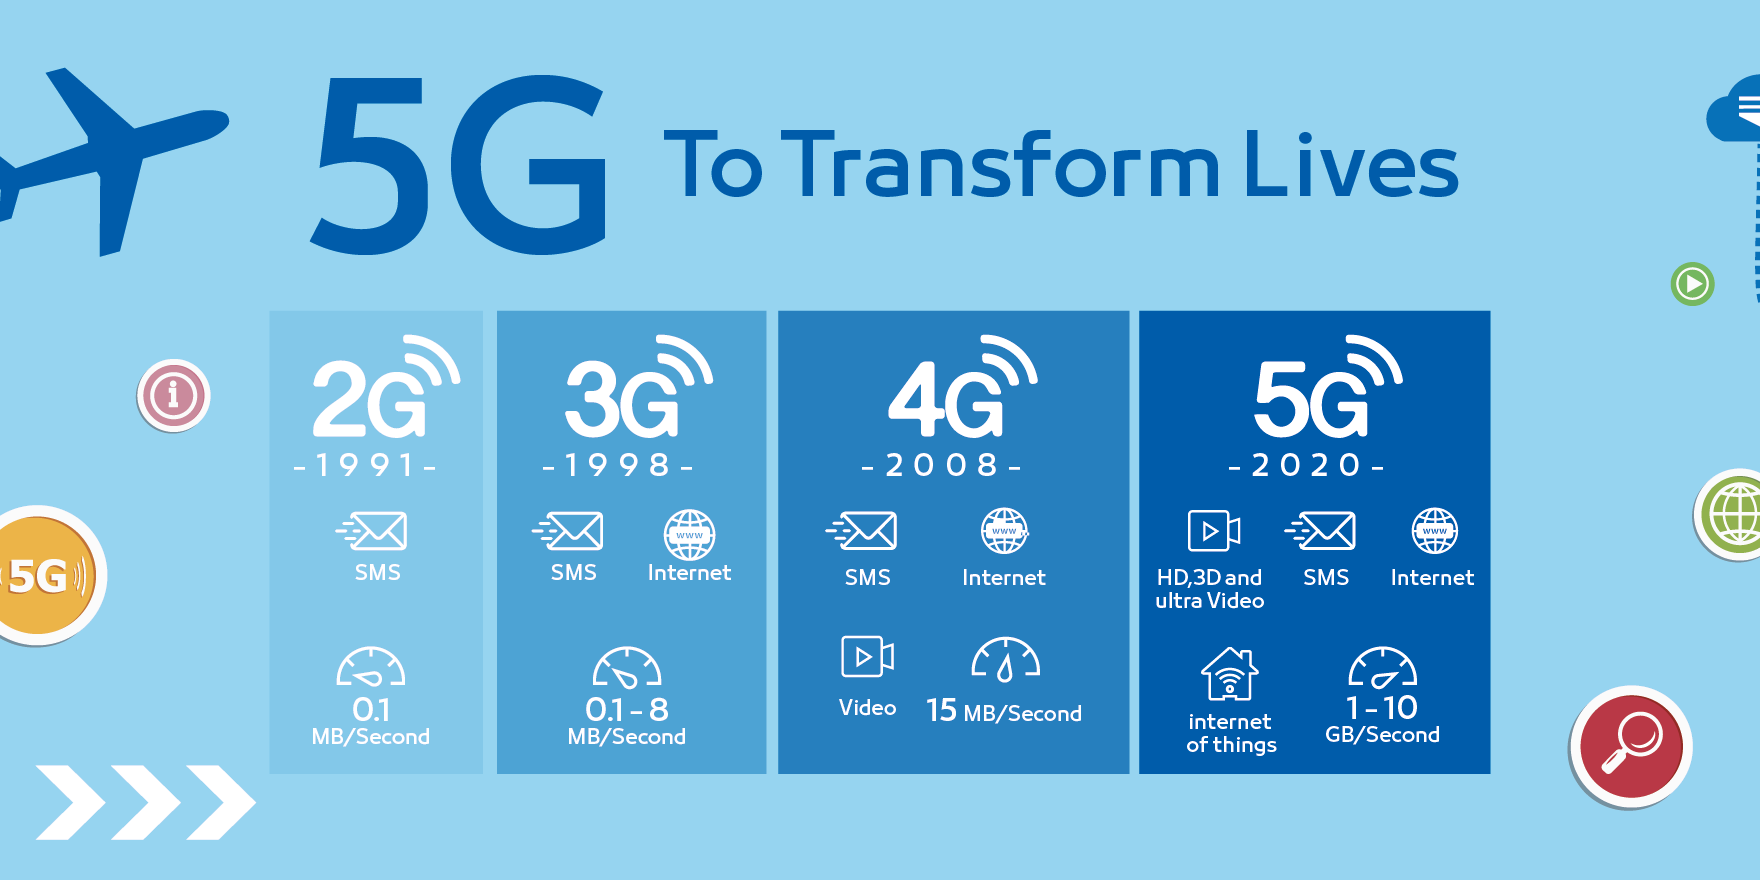 One of Europe's biggest carriers is bringing 5G service to 16 UK cities next year